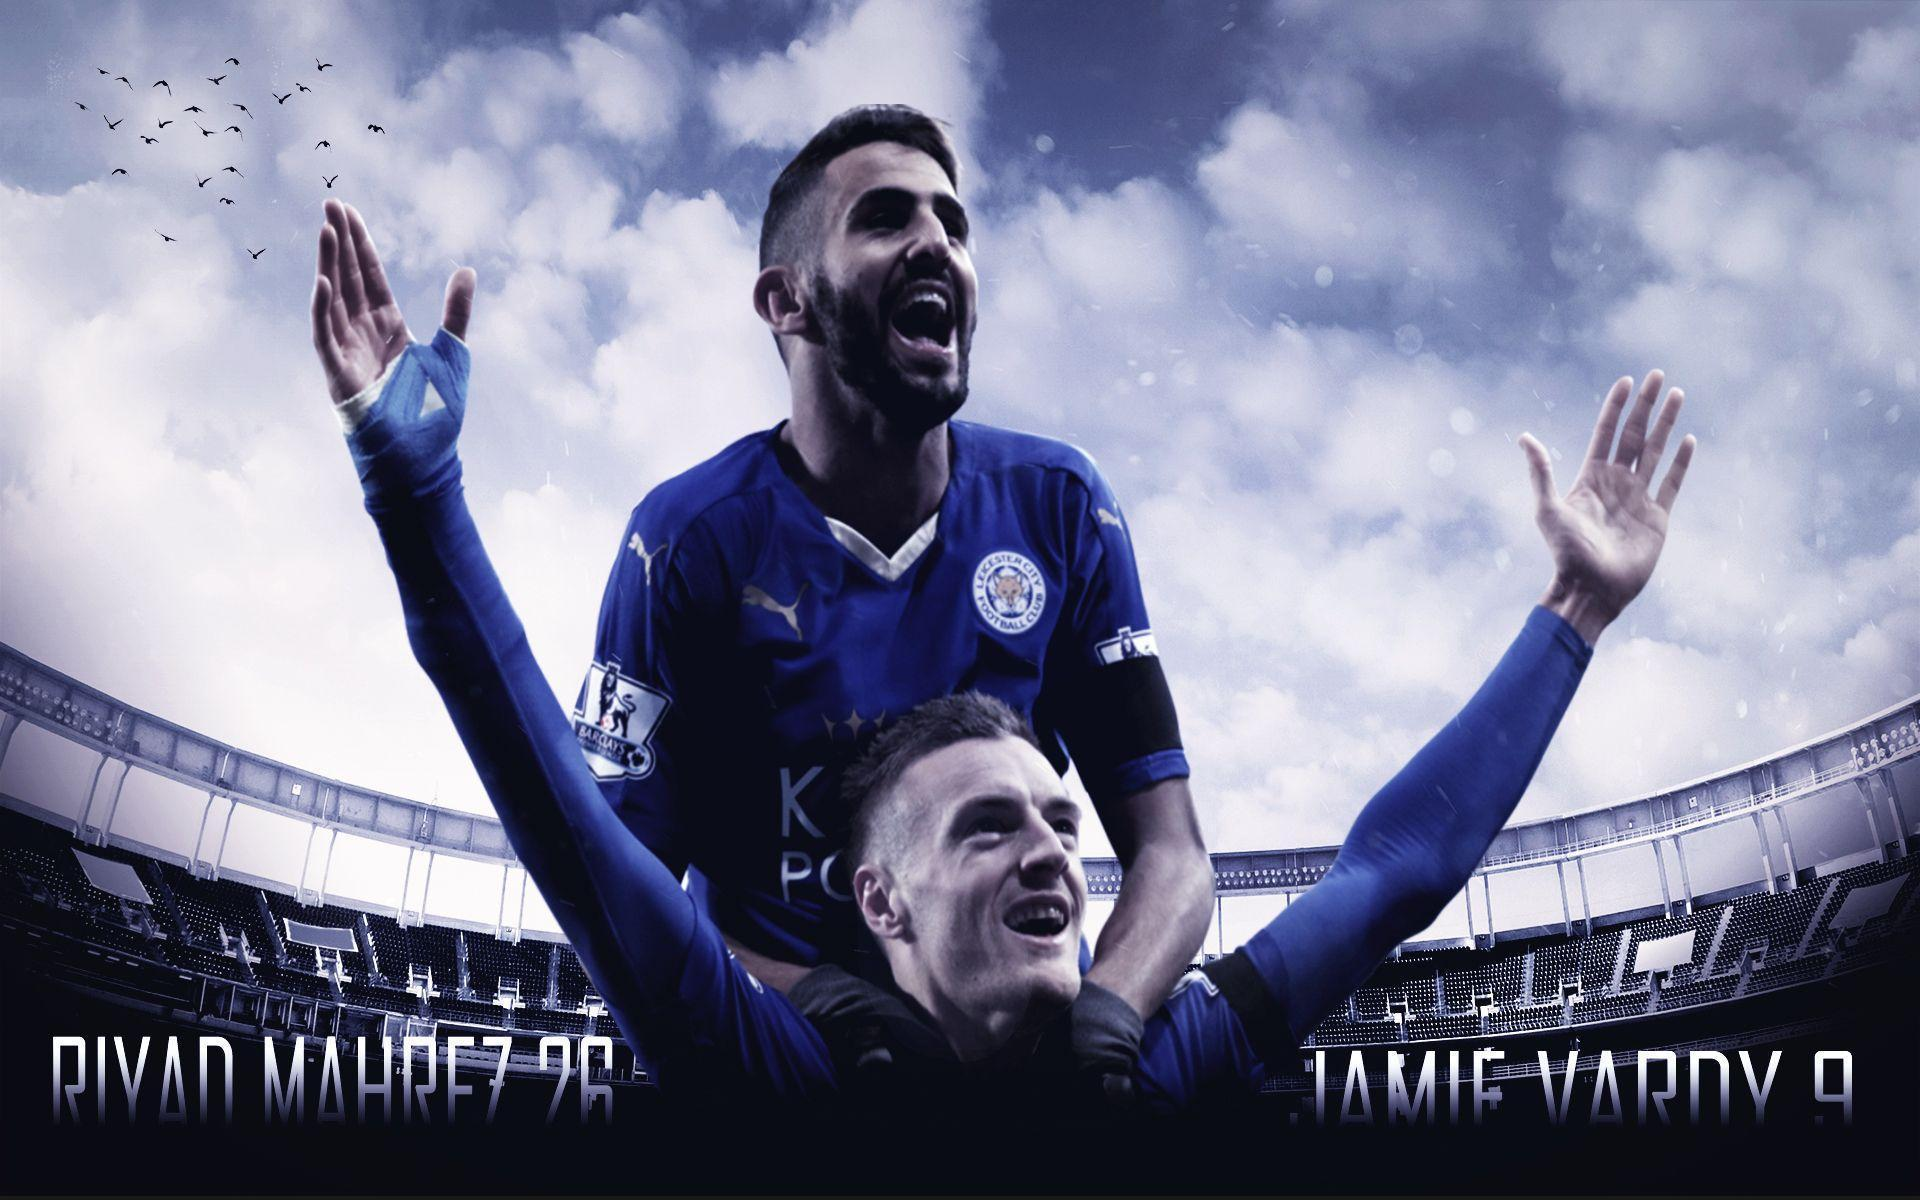 Riyad Mahrez and Jamie Vardy Wallpaper by ChrisRamos4 on DeviantArt